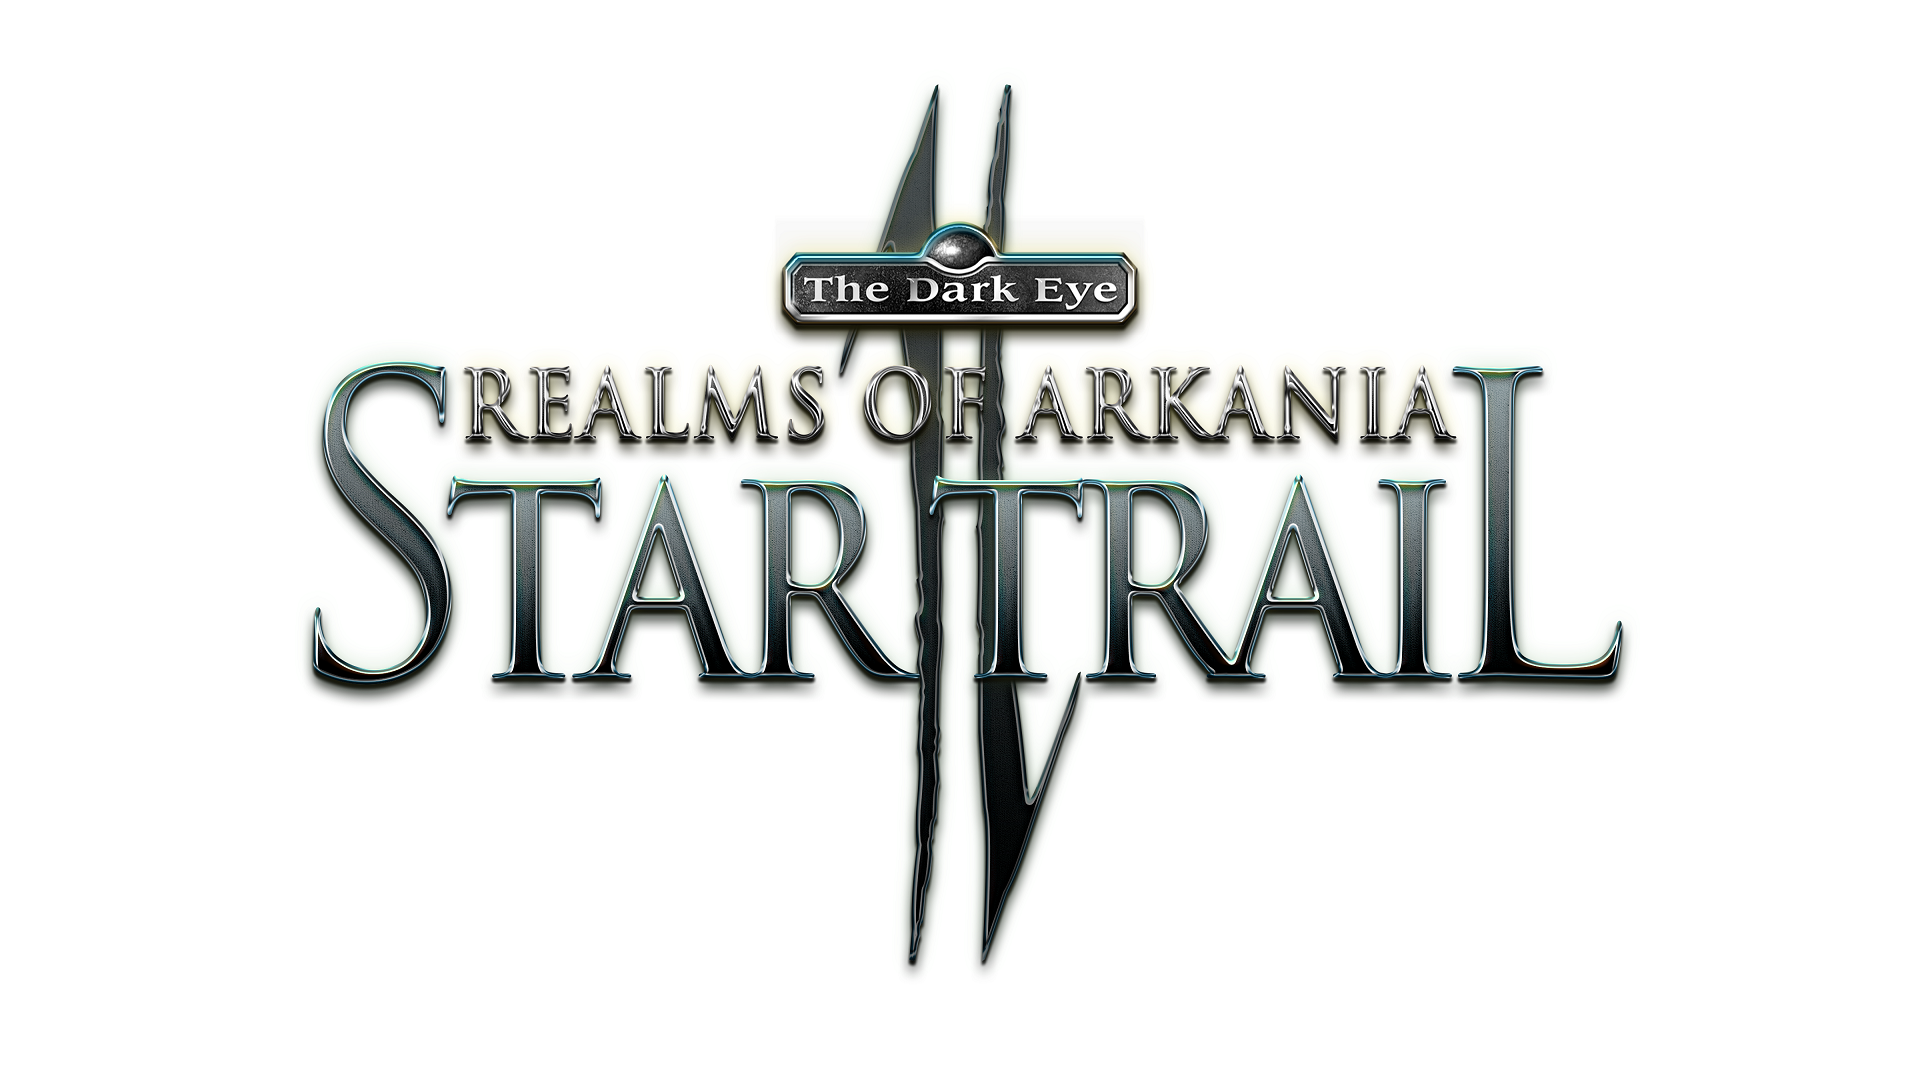 Realms Of Arkania Star Trail Wallpapers